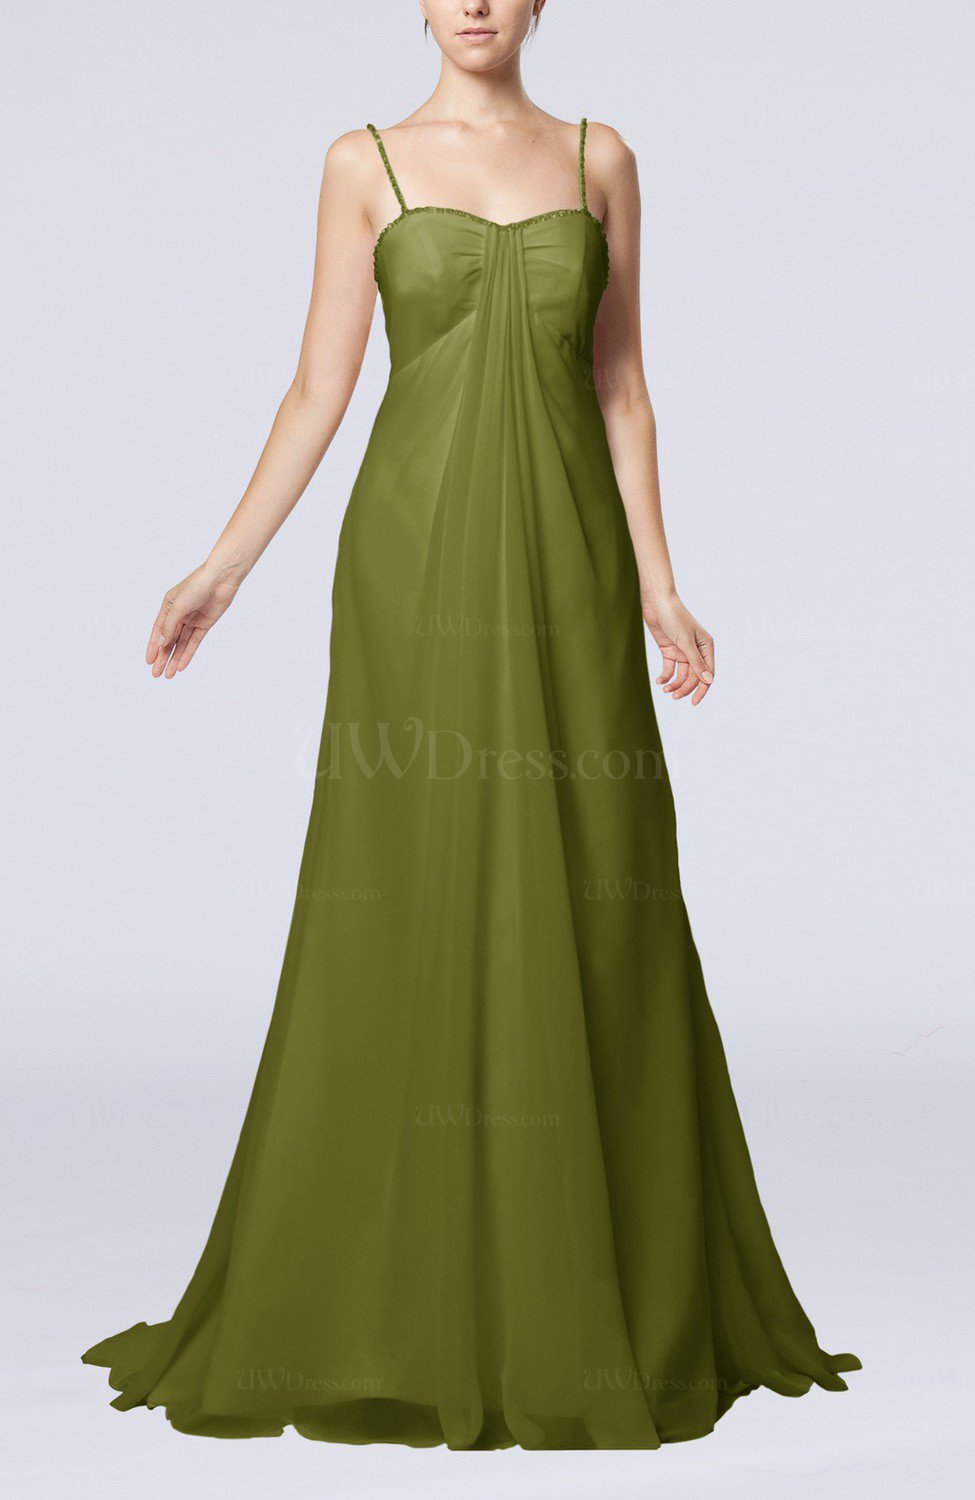 5789e15461bd0 Olive Green Elegant Destination Empire Sleeveless Backless Chiffon Sweep  Train Bridal Gowns (Style D27904)